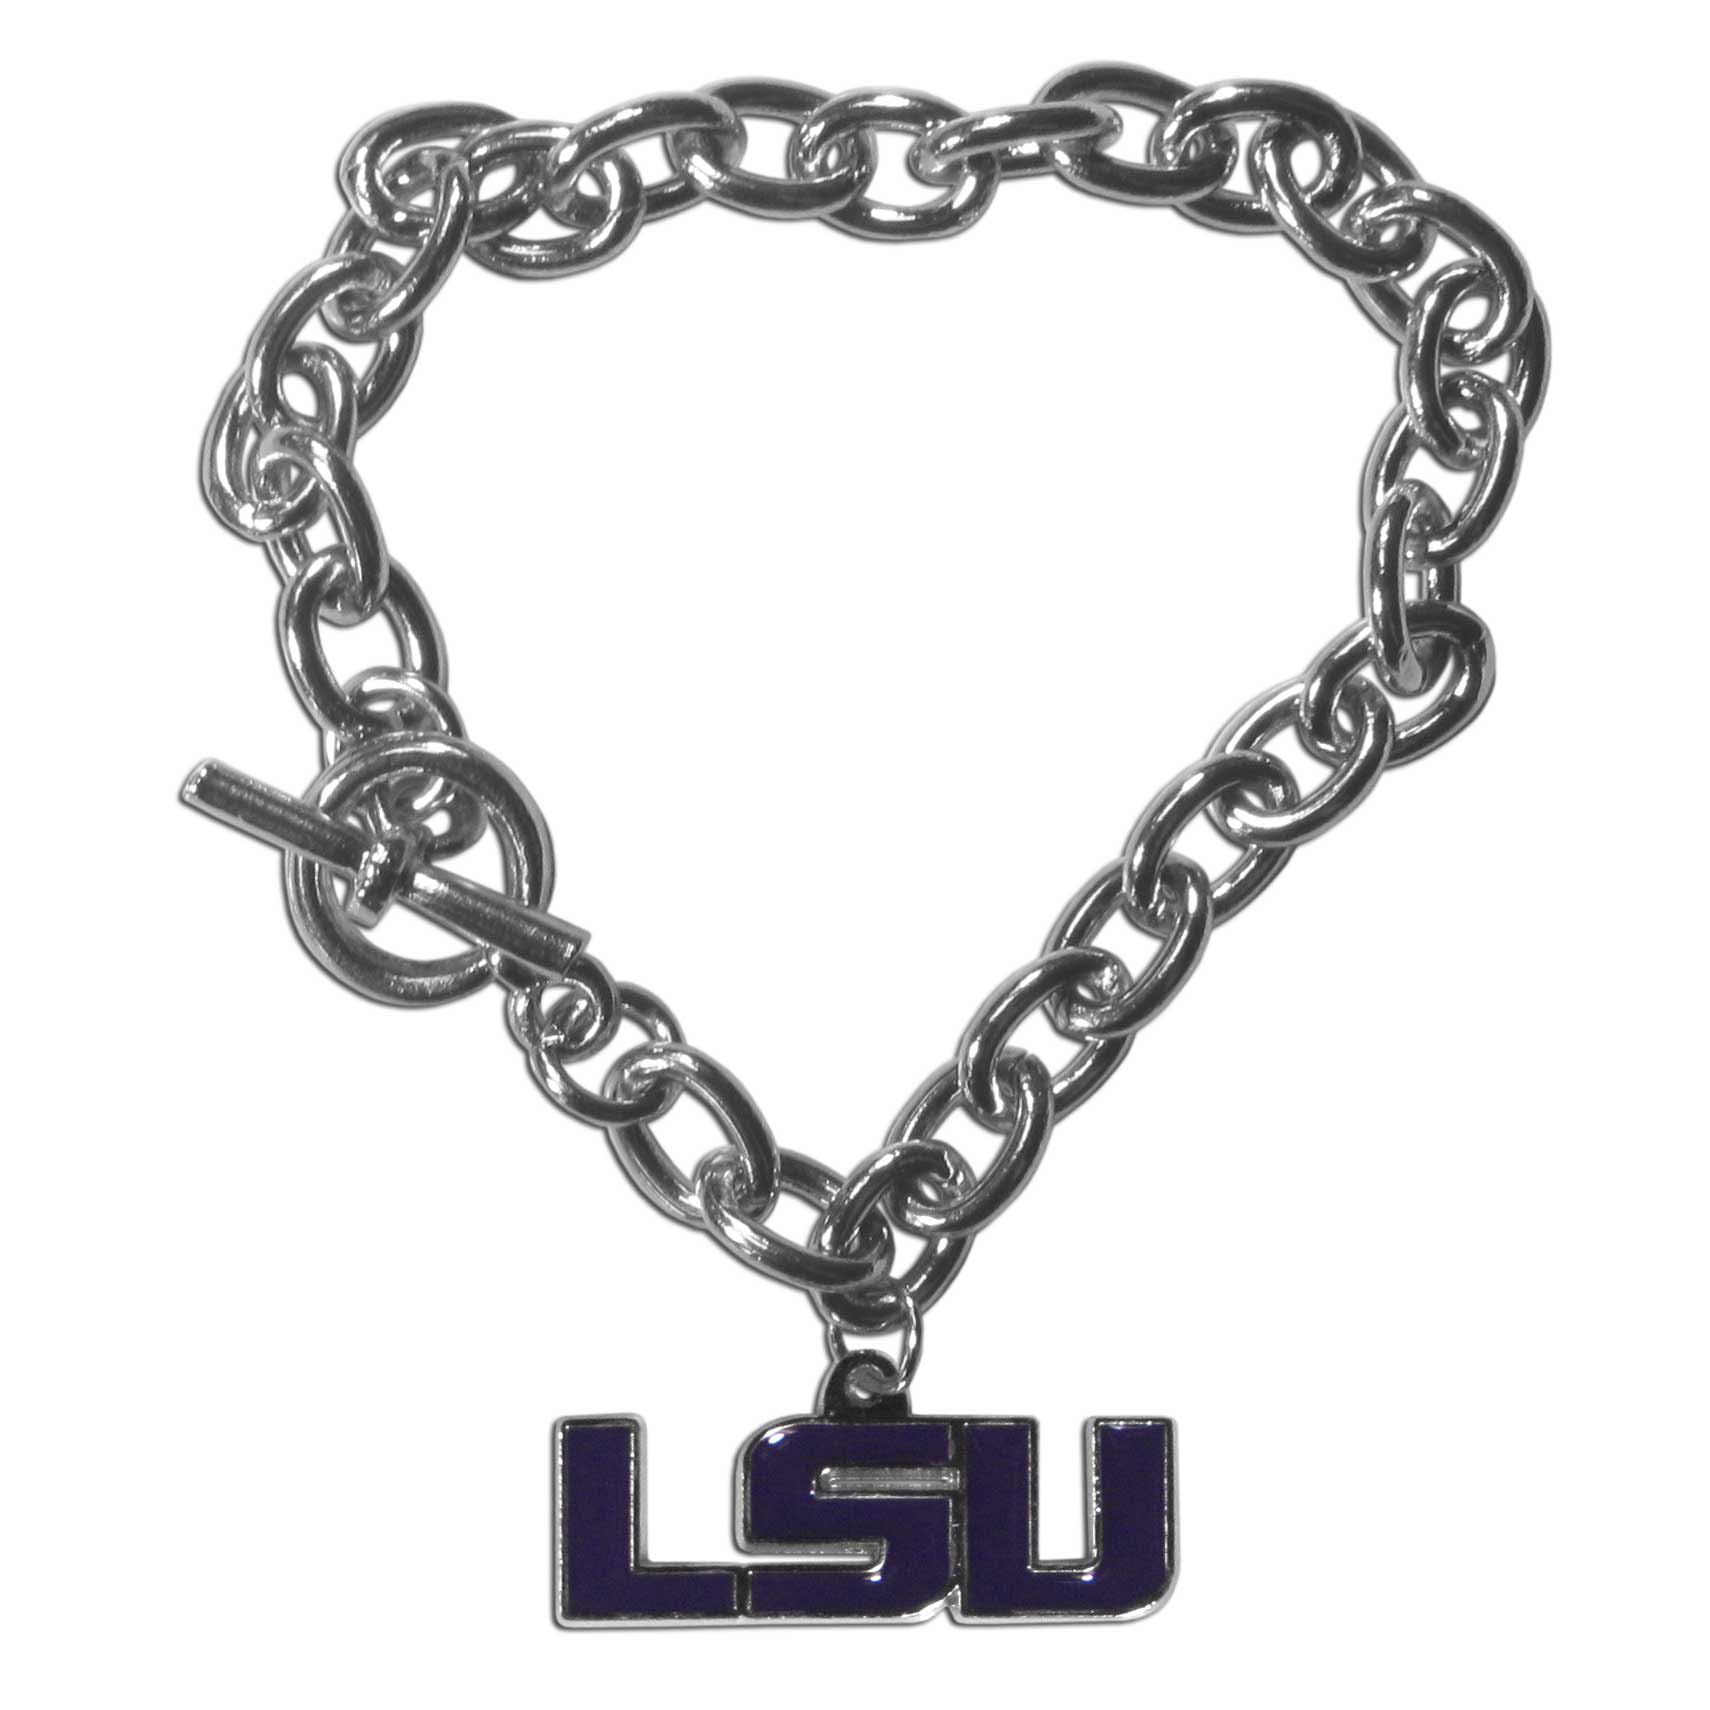 LSU Tigers Charm Chain Bracelet - Our classic single charm bracelet is a great way to show off your team pride! The 7.5 inch large link chain features a high polish LSU Tigers charm and features a toggle clasp which makes it super easy to take on and off.